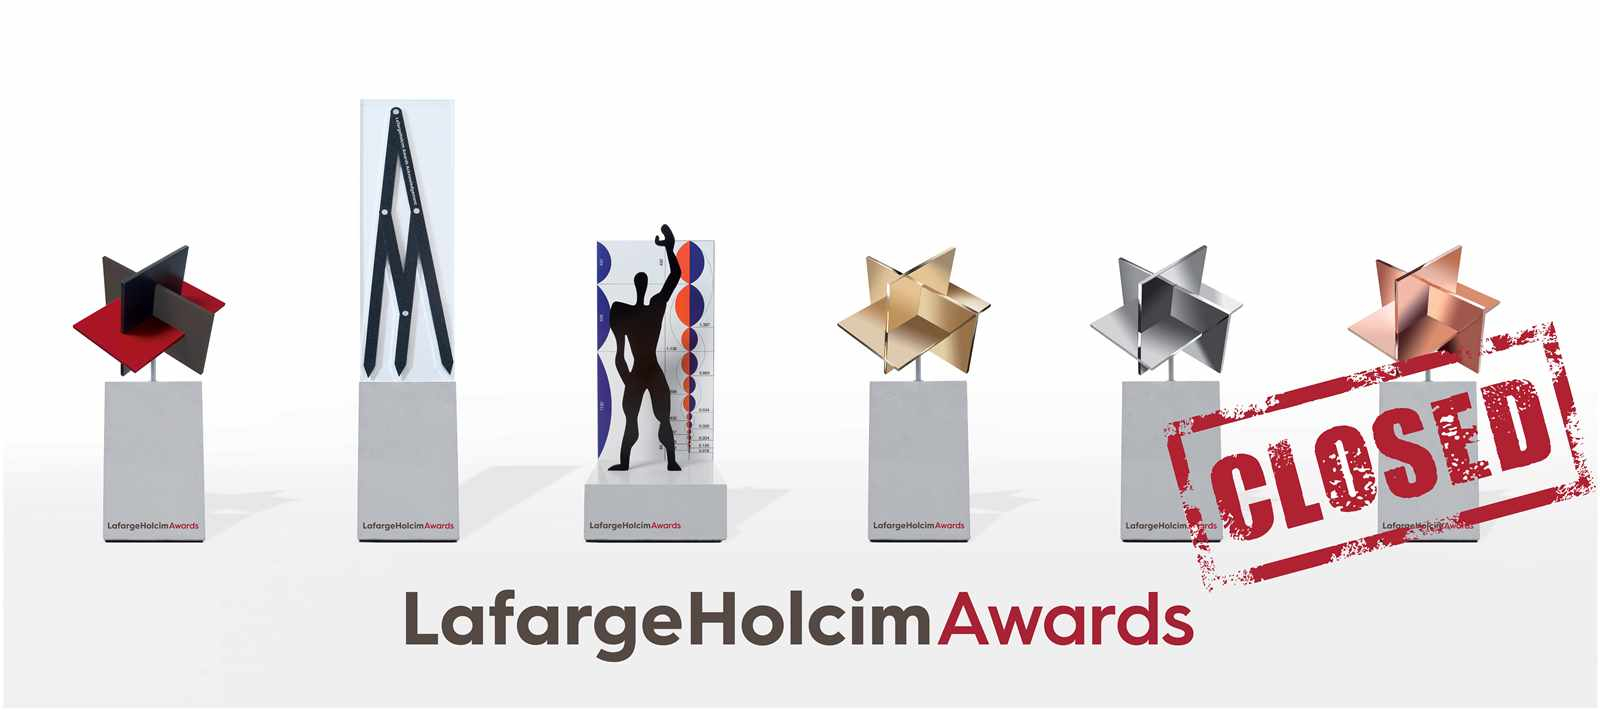 lafargeholcimawards-closed2020jpg